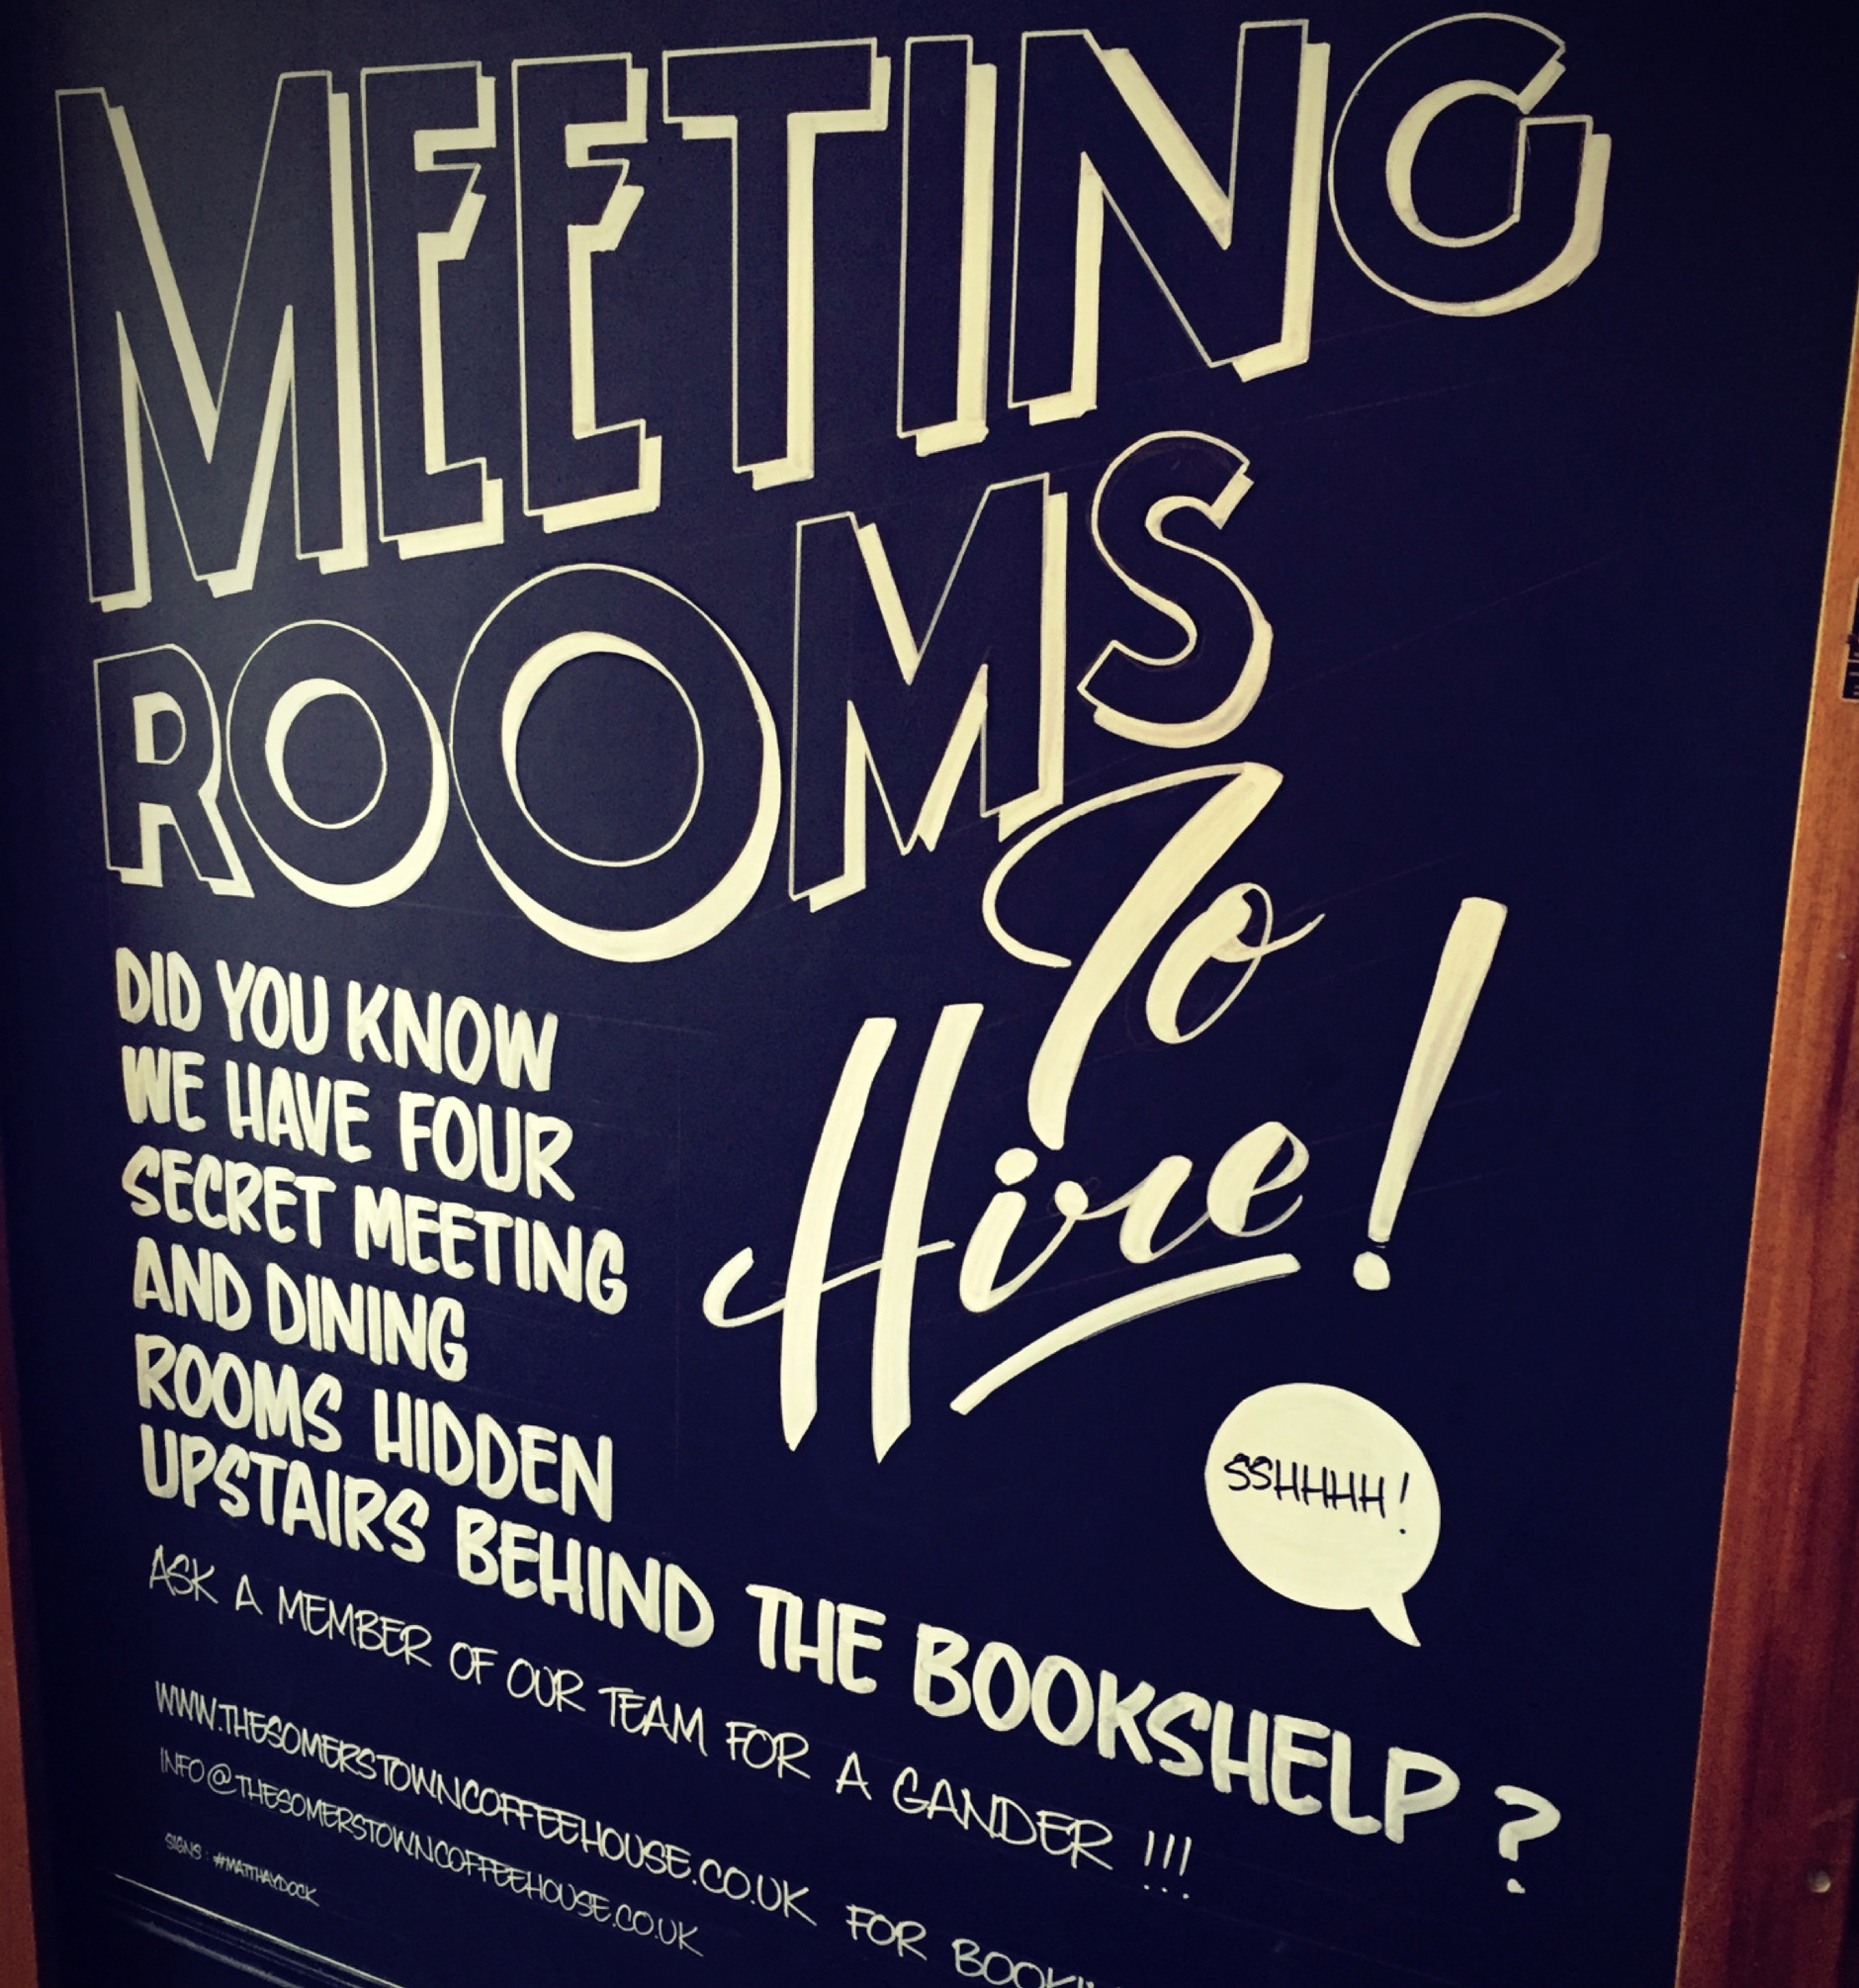 Meeting rooms at The Somers Town Coffee House…hidden through the bookcase